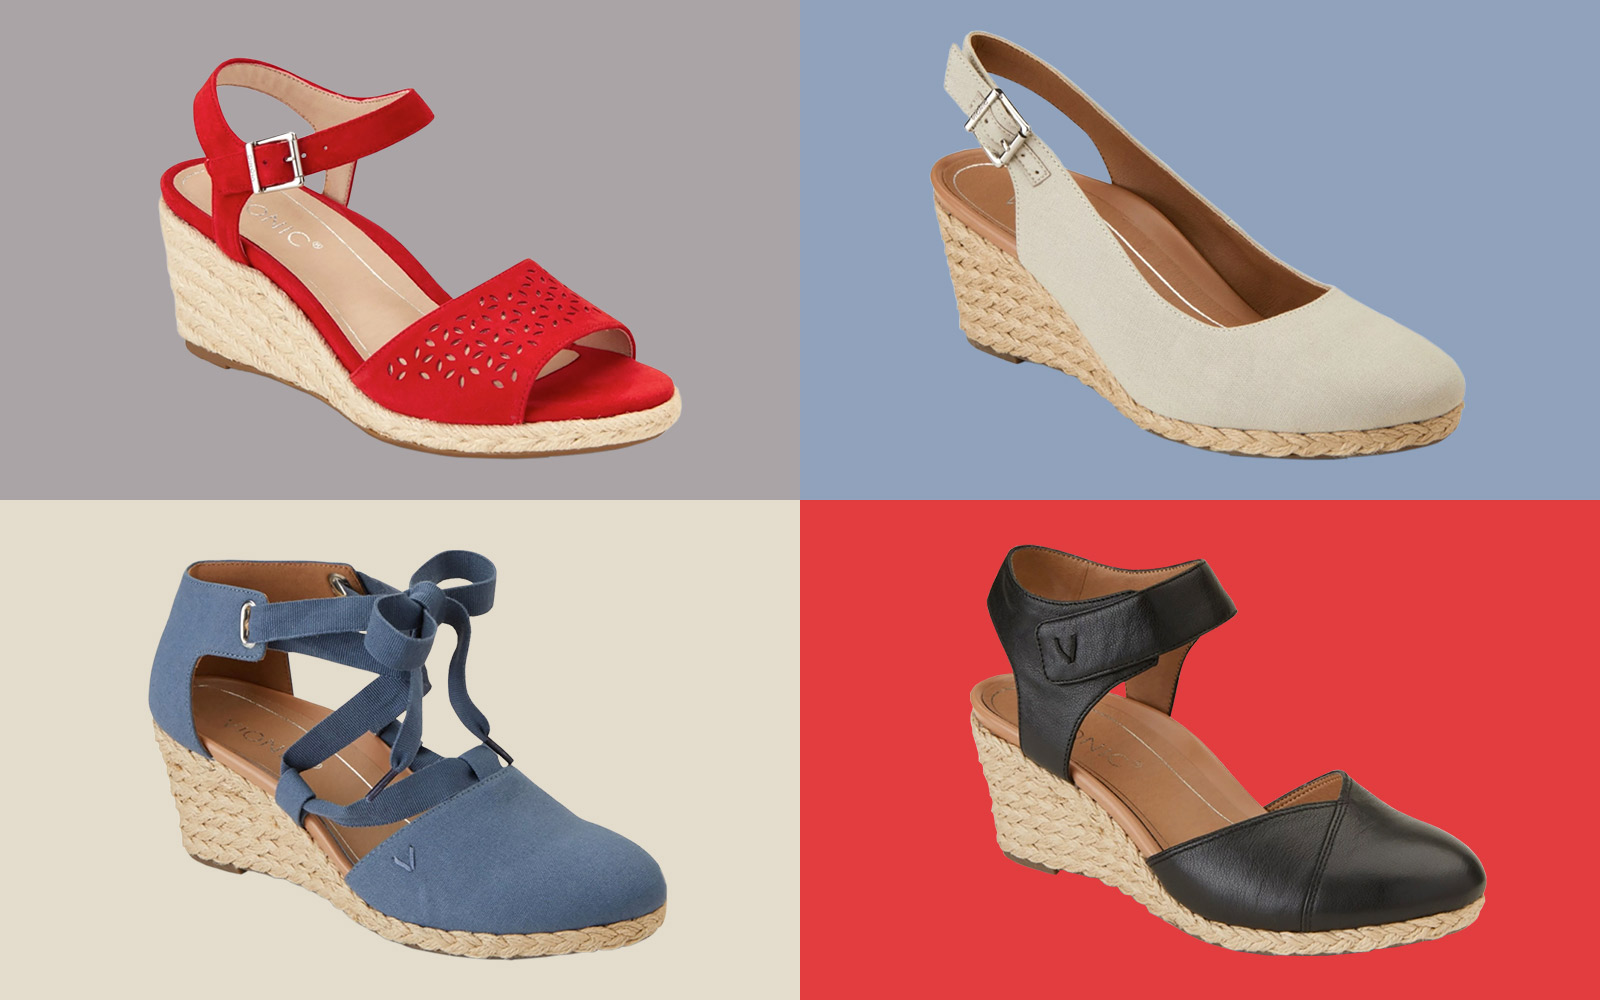 861aceb1046f This Podiatrist-designed Shoe Brand Just Launched the Cutest Line of  Espadrilles